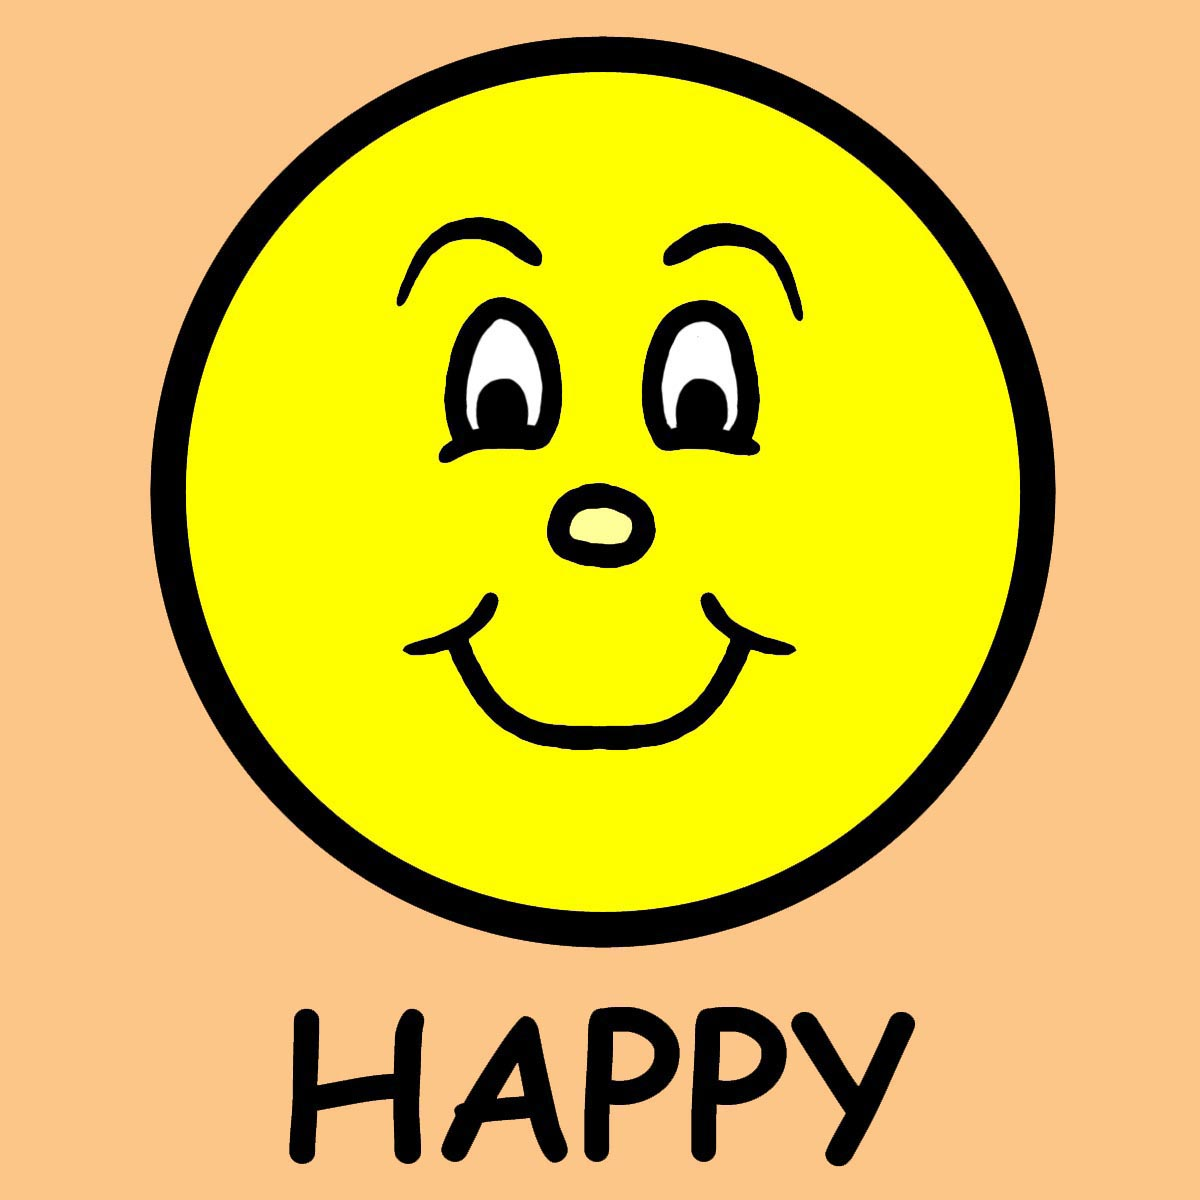 1200x1200 Happy And Sad Face Clip Art Free Clipart Images 8